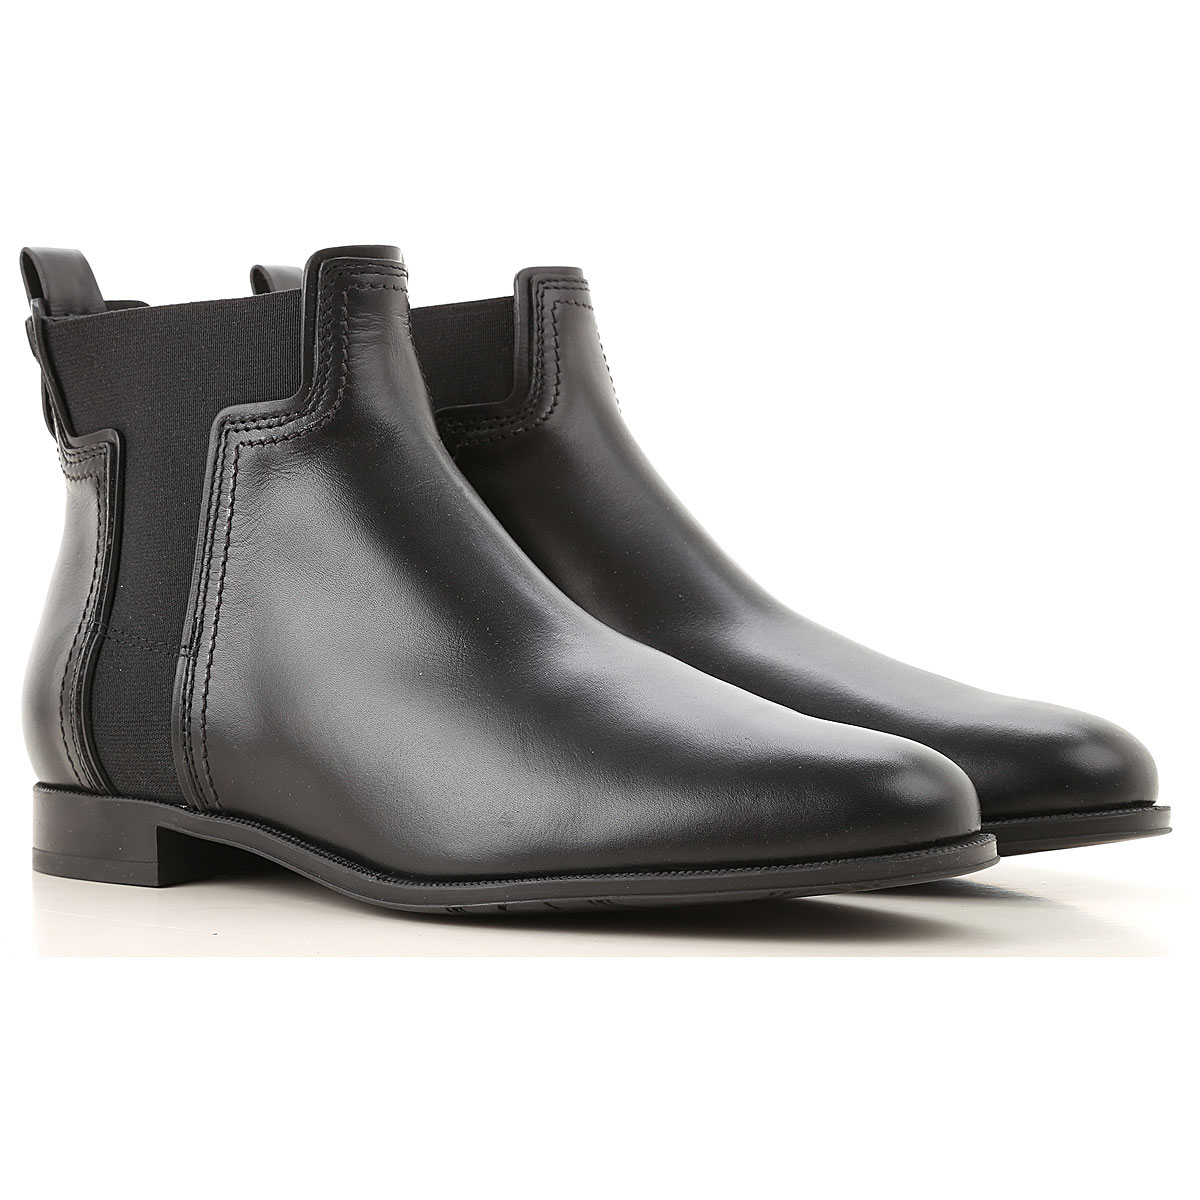 Tods Boots for Women, Booties On Sale, Black, Leather, 2019, 11 5.5 6 6.5 7 8 8.5 9 9.5